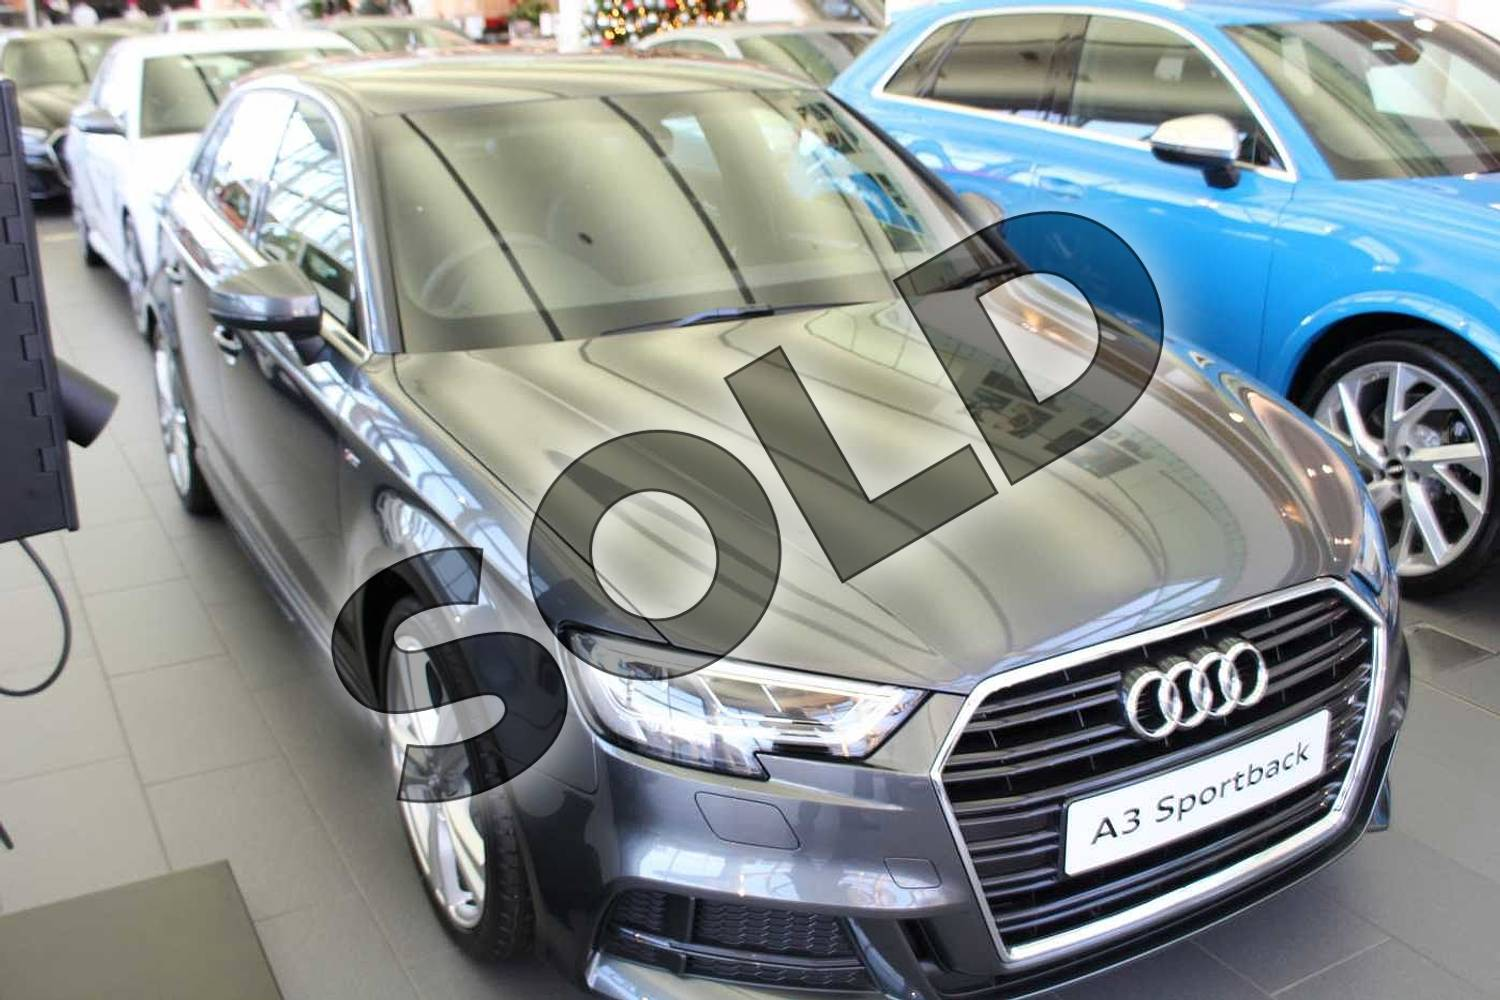 Audi A3 Diesel Sportback 30 Tdi 116 S Line 5dr S Tronic Daytona Grey Pearlescent With Black Rock Gray Interior